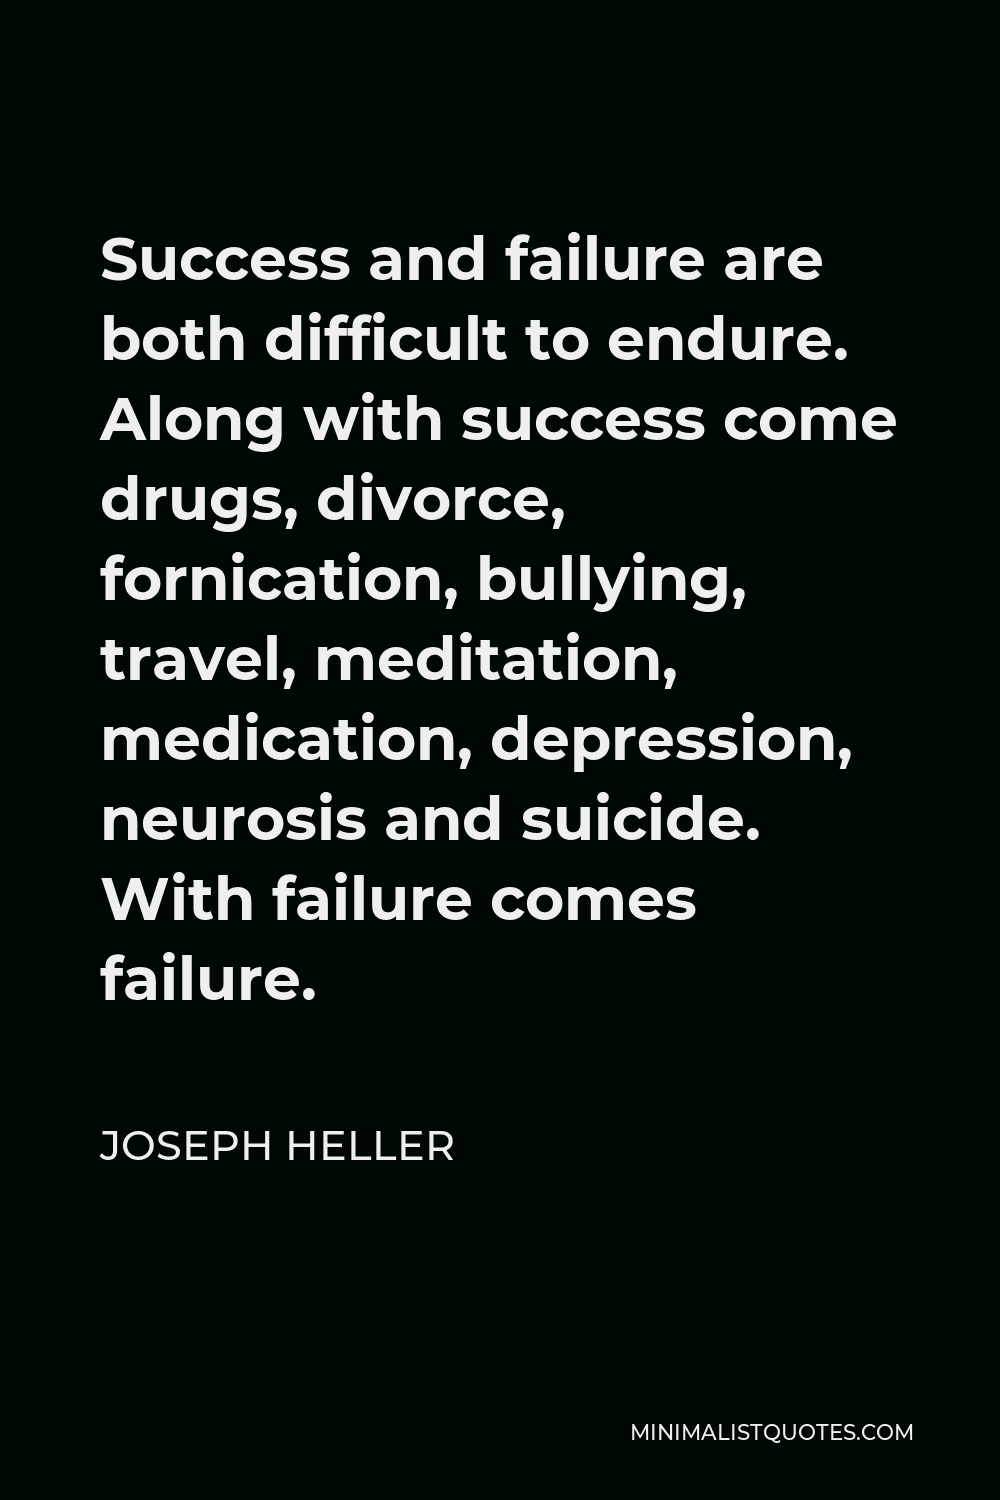 Joseph Heller Quote - Success and failure are both difficult to endure. Along with success come drugs, divorce, fornication, bullying, travel, meditation, medication, depression, neurosis and suicide. With failure comes failure.